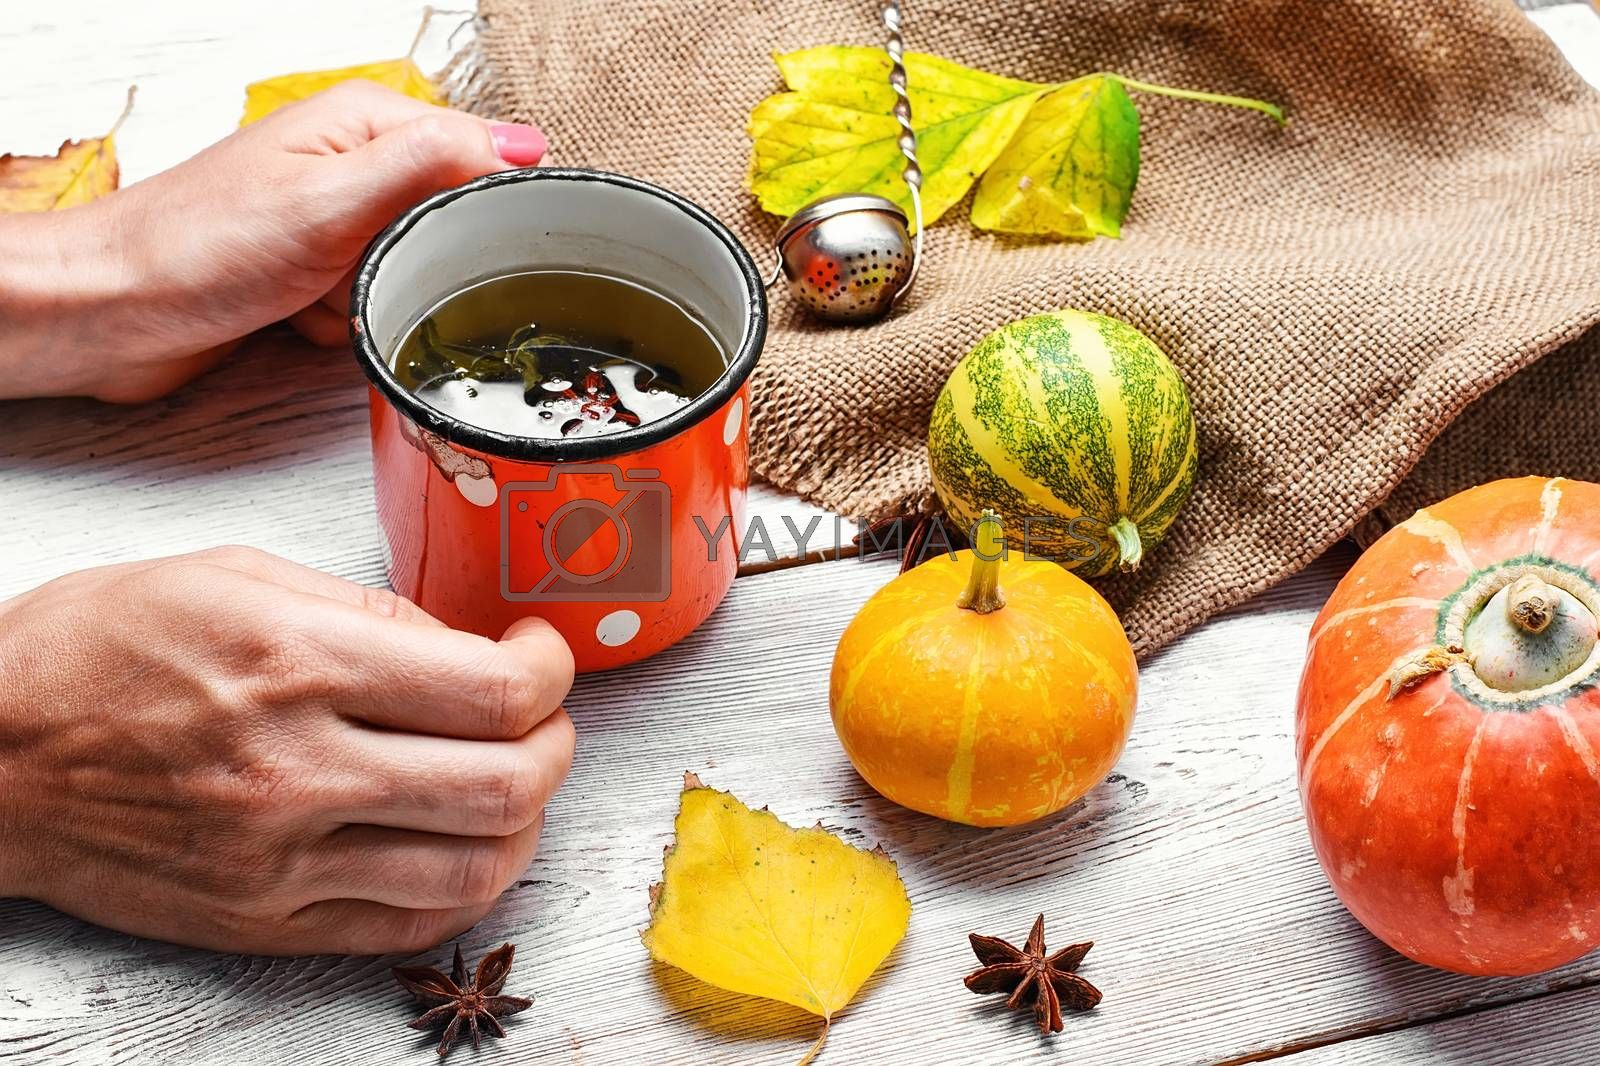 Cup of tea in hand and the autumn decoration with pumpkins